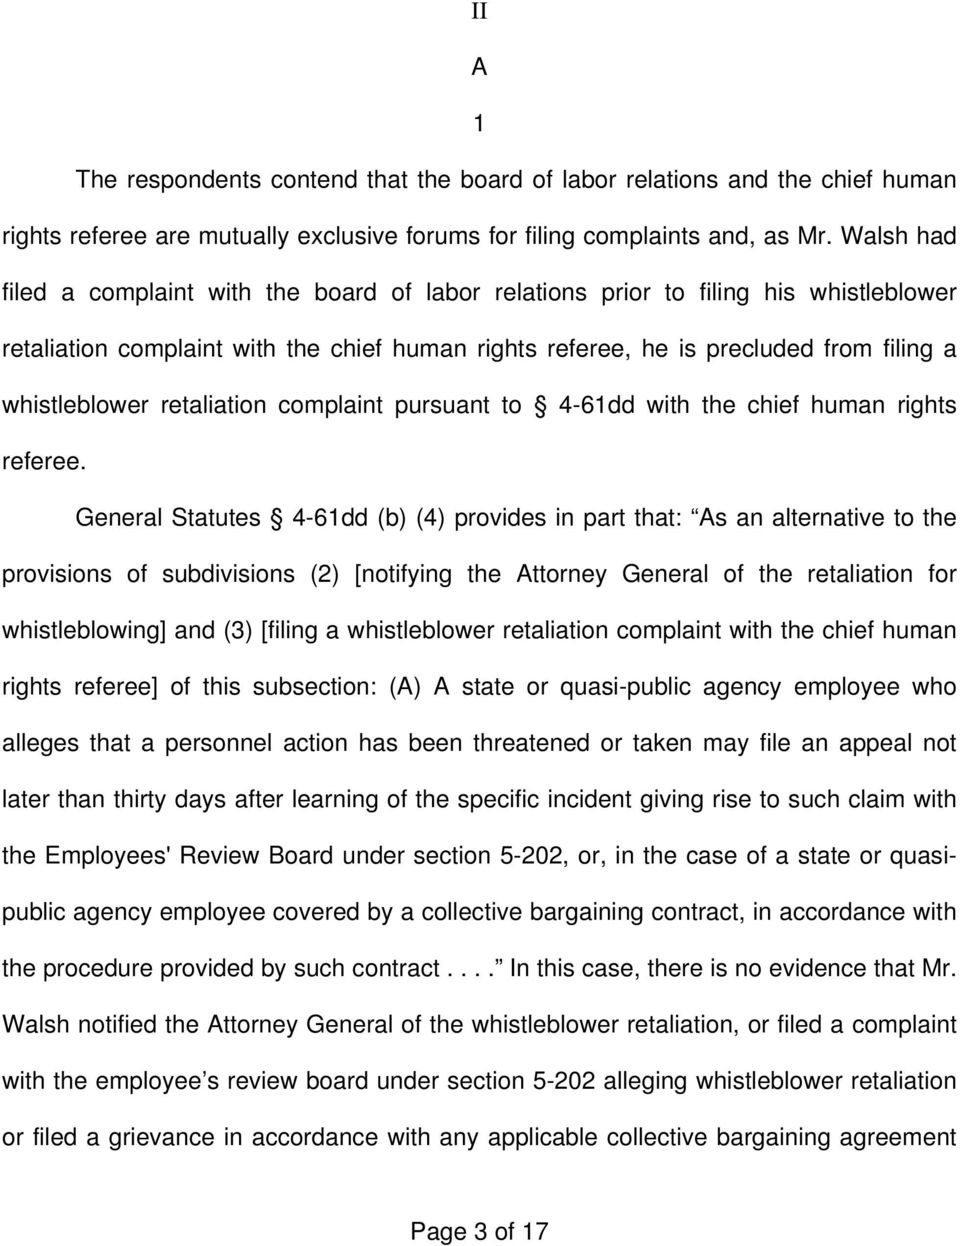 retaliation complaint pursuant to 4-61dd with the chief human rights referee.